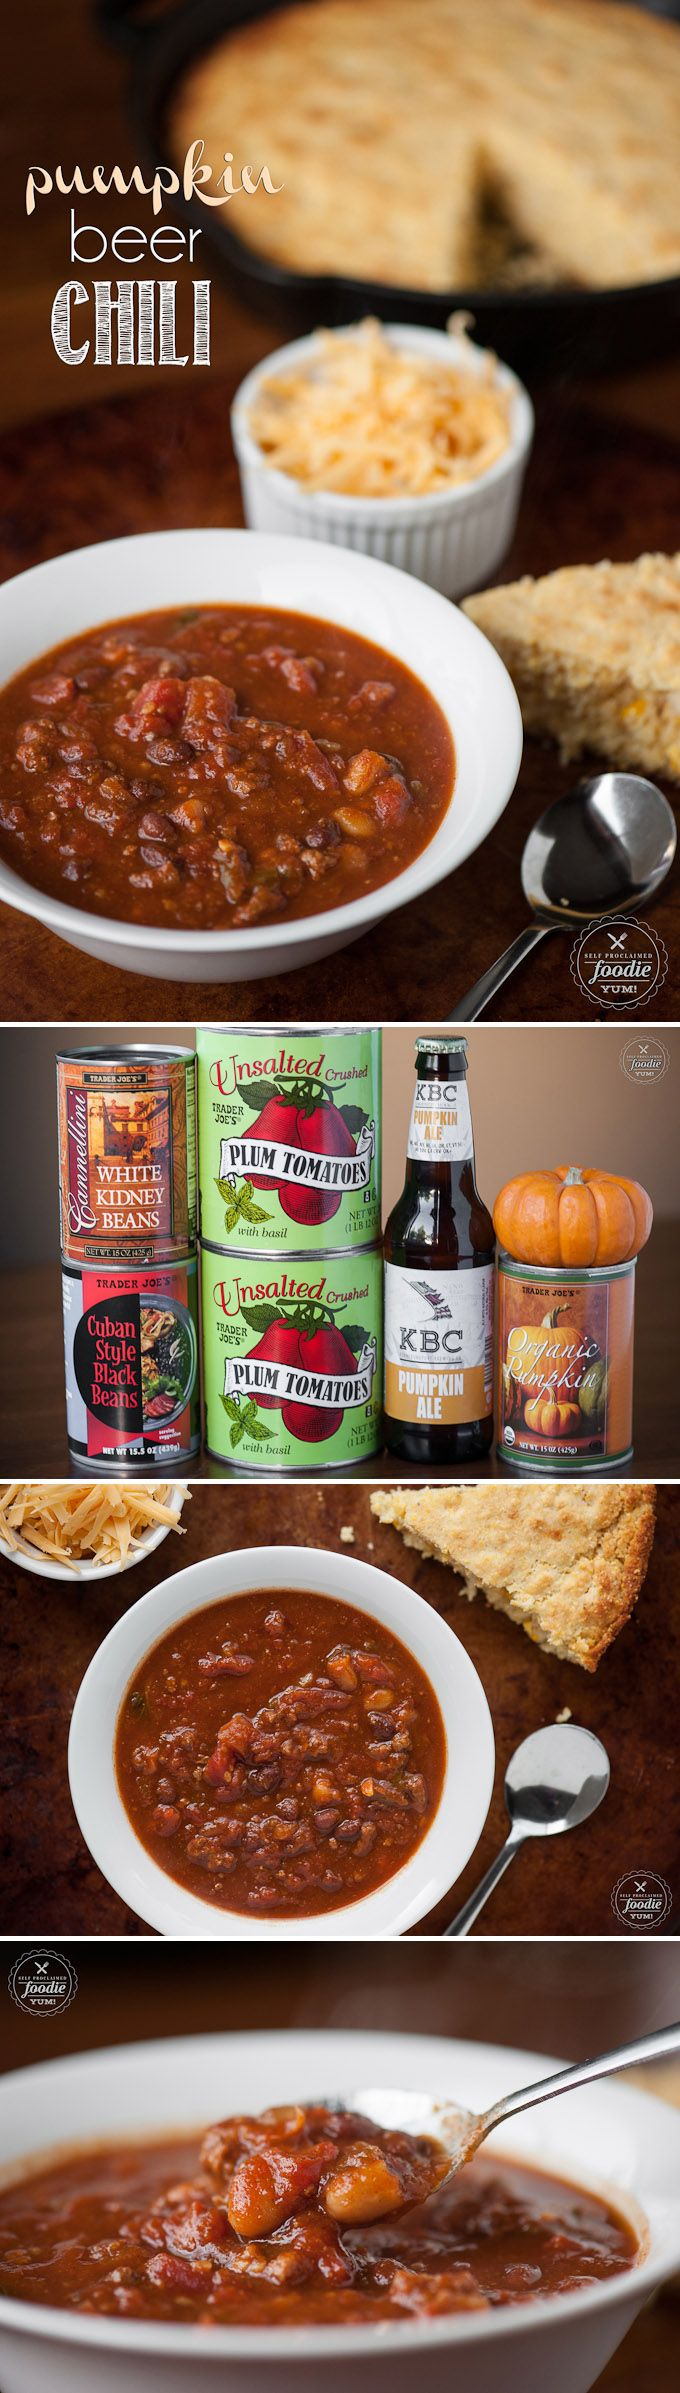 I transformed my popular beer chili by adding the best fall has to offer and created Pumpkin Beer Chili, made with pumpkin ale, pumpkin puree, and cinnamon.